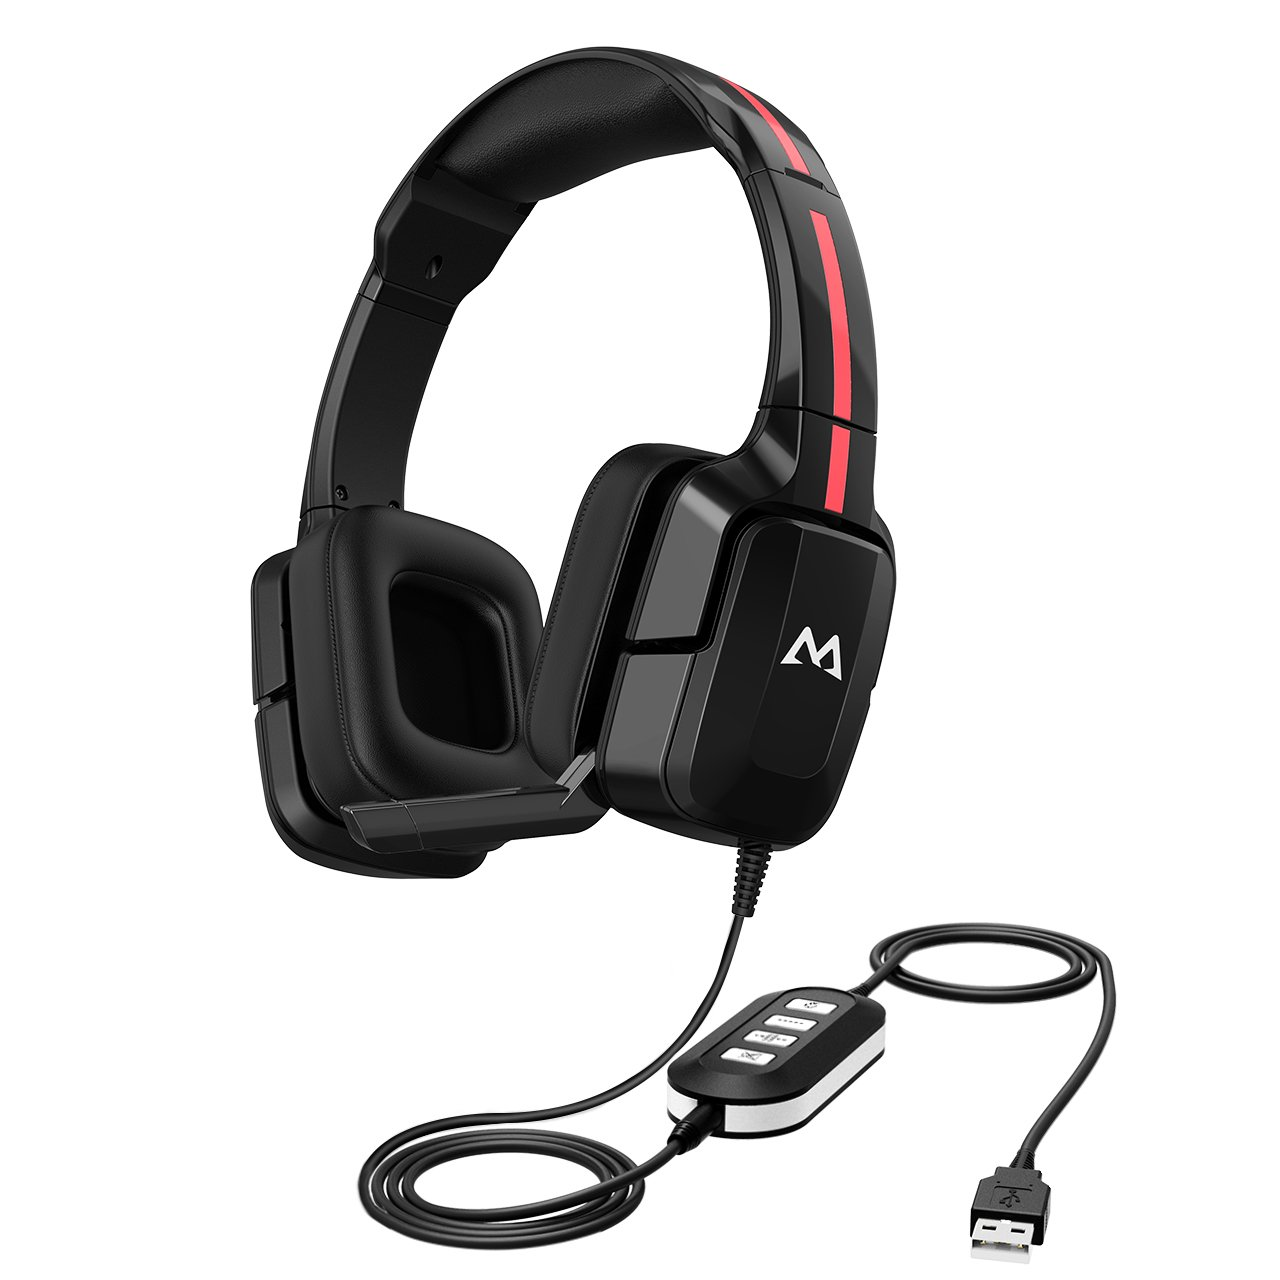 Mpow USB/3.5mm Computer Headset with Noise Canceling Microphone, Lightweight USB Headphones for Comfort, Over Ear Skype Headphones with in-line Volume Control for Office, Business, Call Center by Mpow